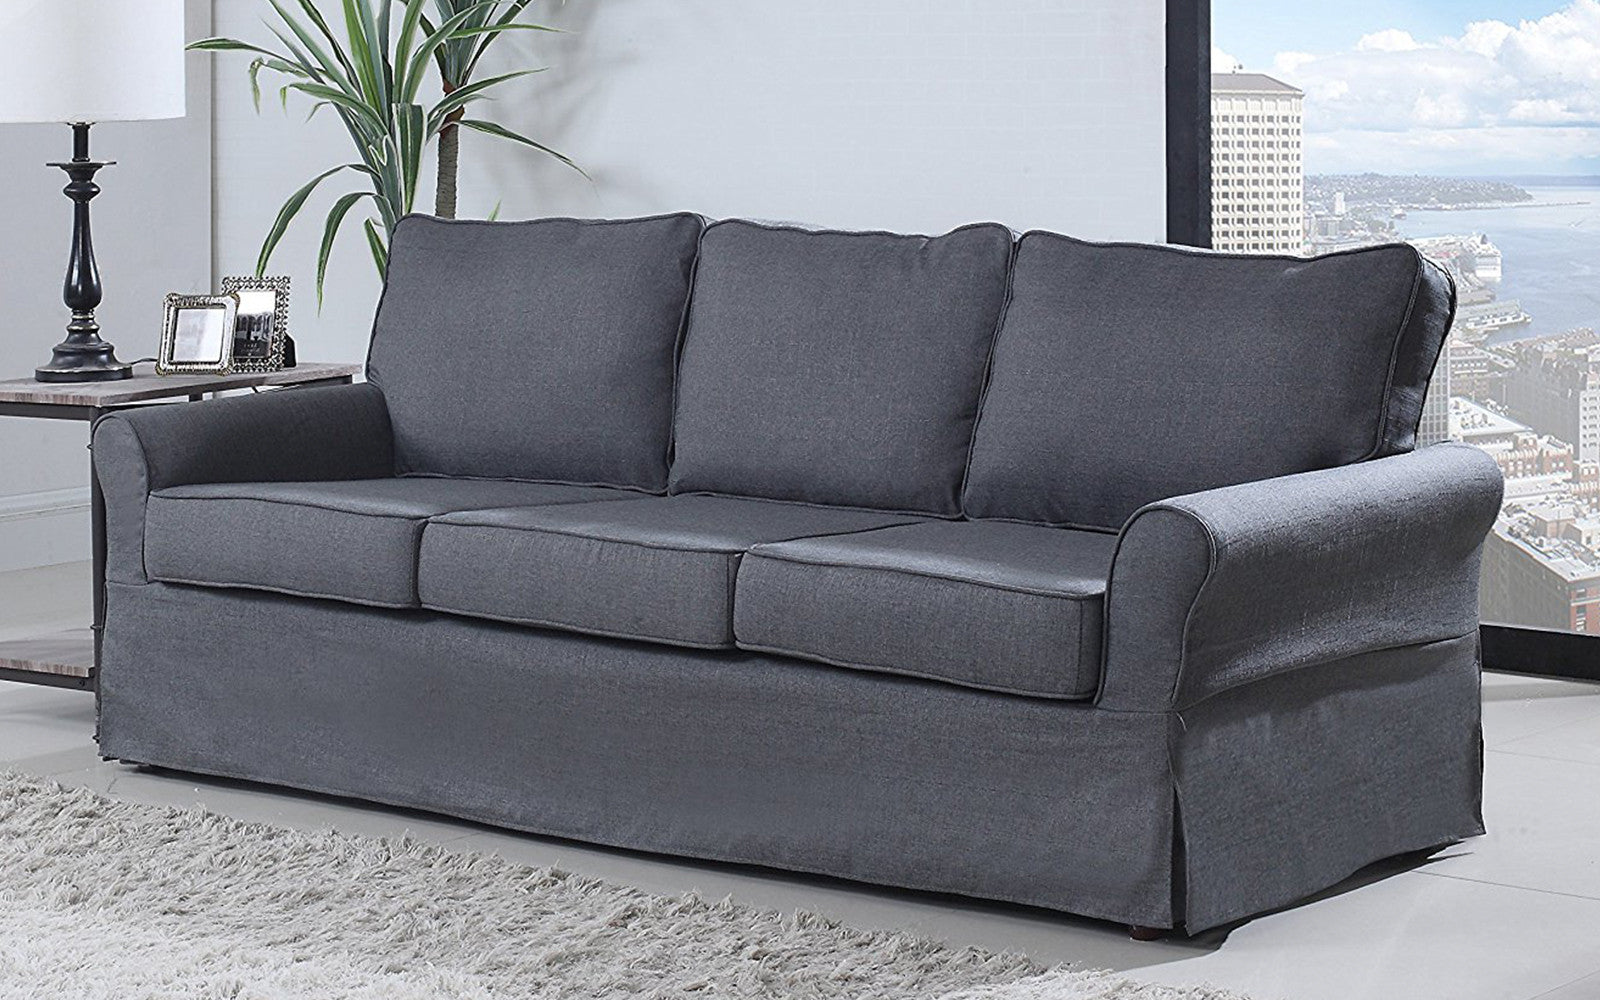 Merveilleux ... Griffin Classic Linen Fabric Sofa In Grey ...